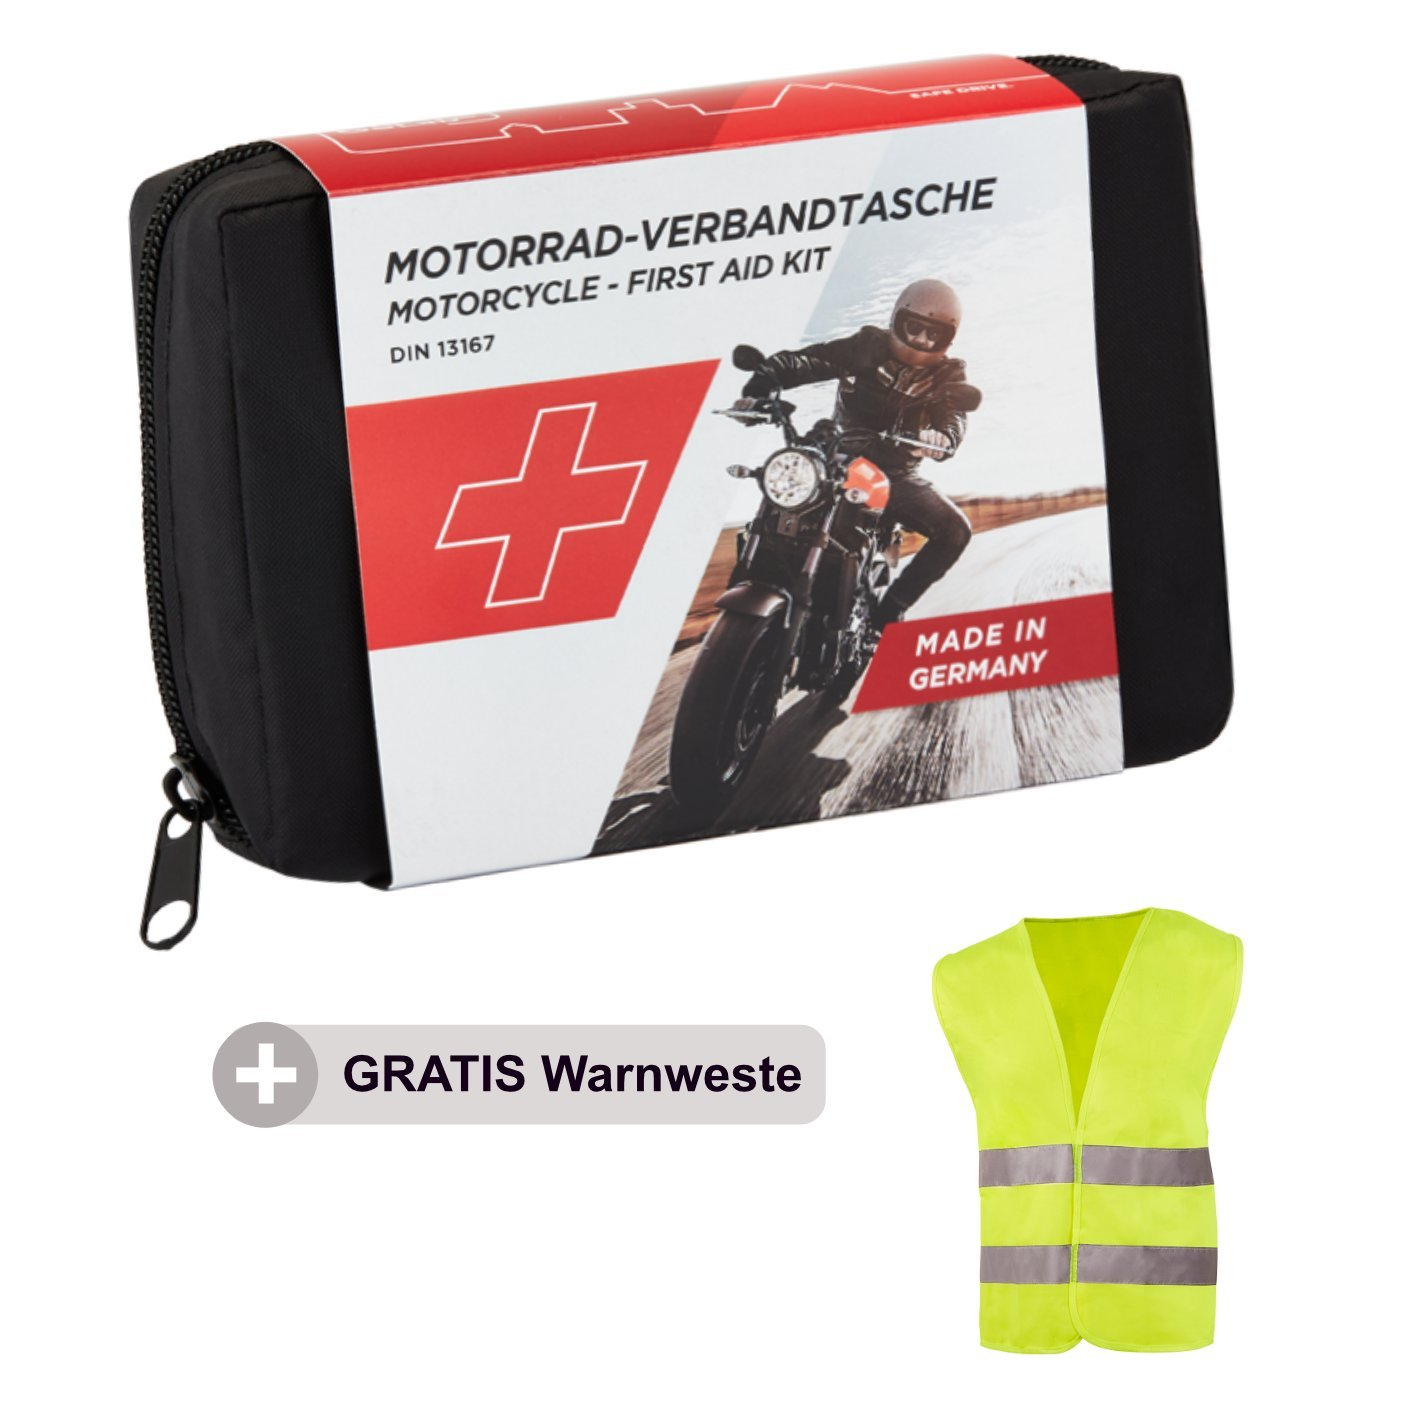 Golab Motorcycle First Aid Kit  –   Small and Compact HSE First Aid Kit DIN 13167  including Warning Vest Fits All European Countries (Austria Switzerland Italy, Germany etc.)